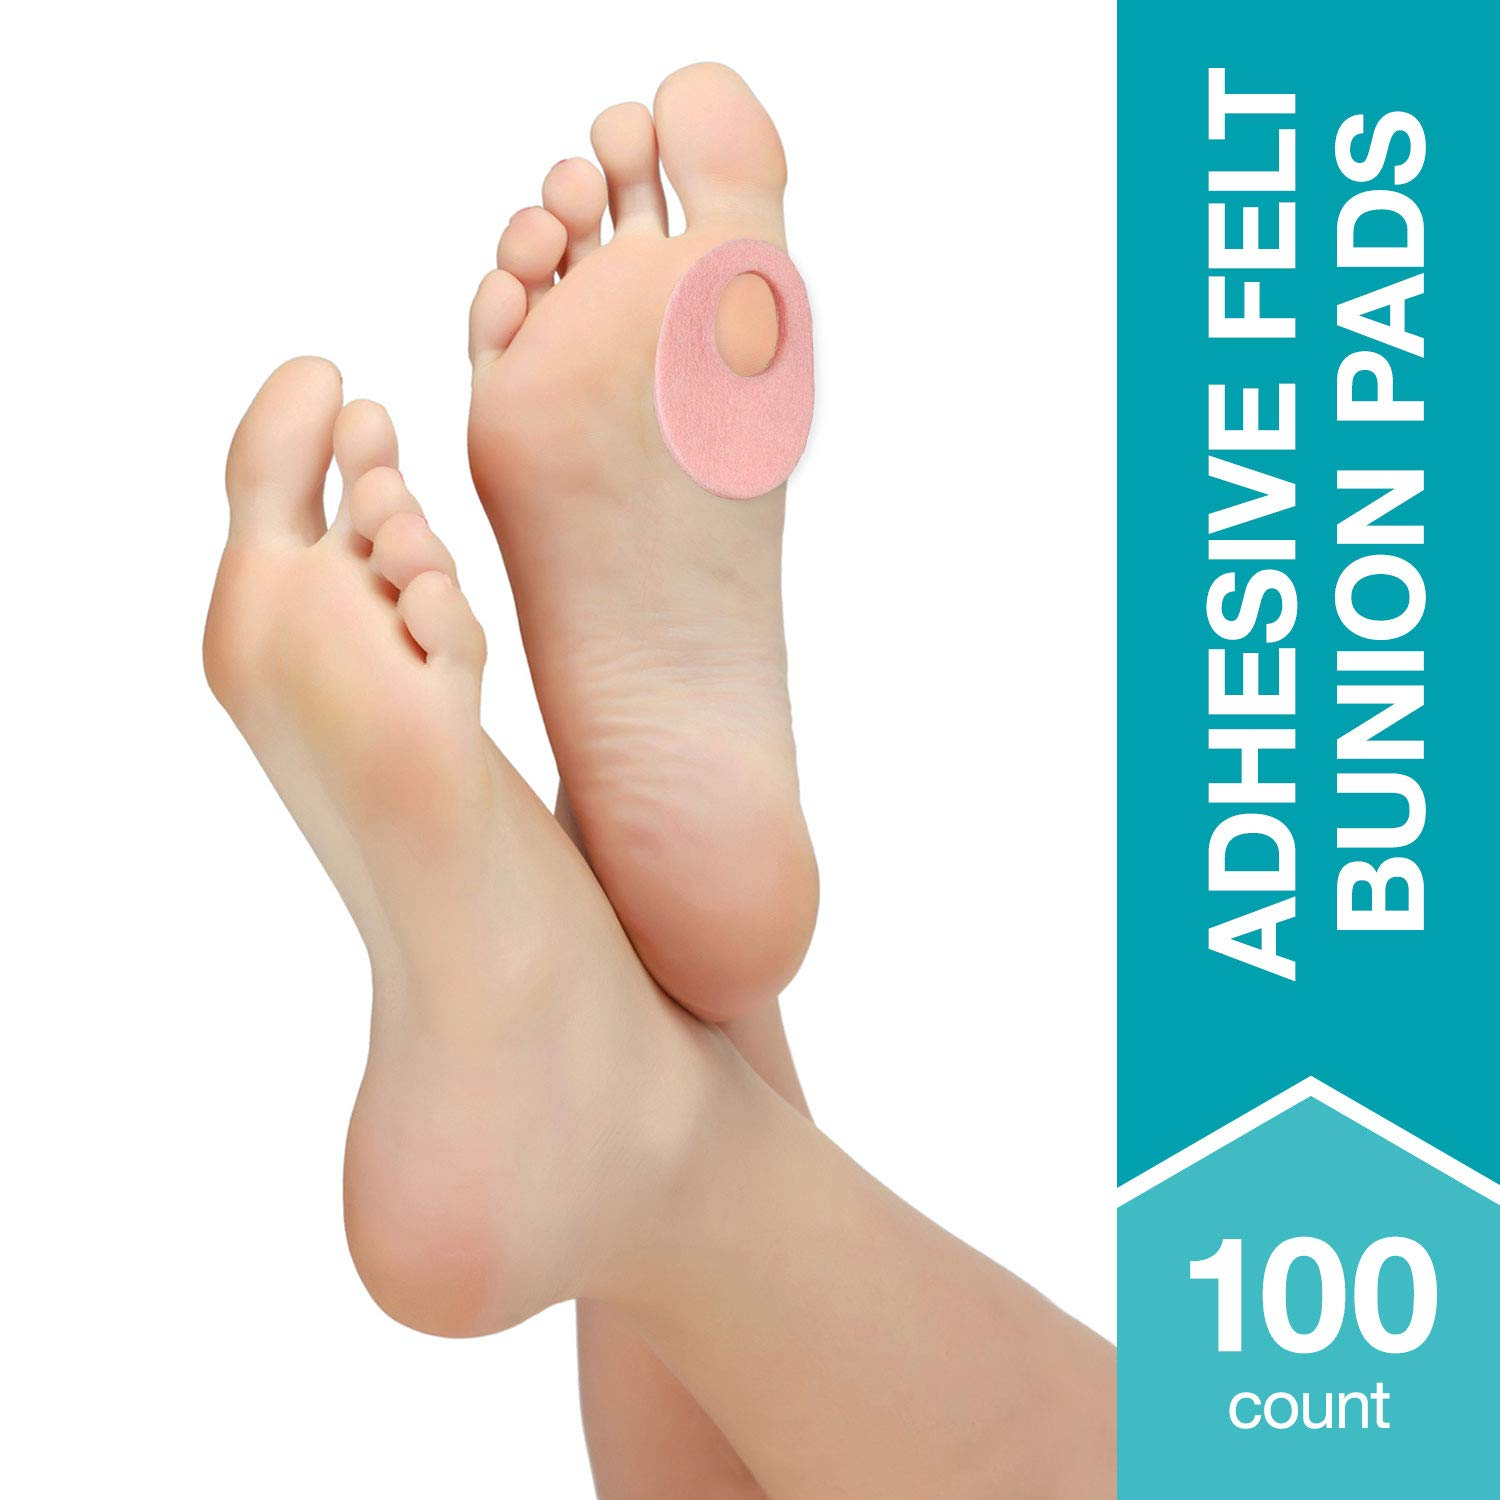 Steins Adhesive Felt Bunion Pads, Metatarsal Cushion, Protects Bunions, Callus & Blisters, Alleviates Shoe Friction, BP-12, 1/8'', 100Count by Steins